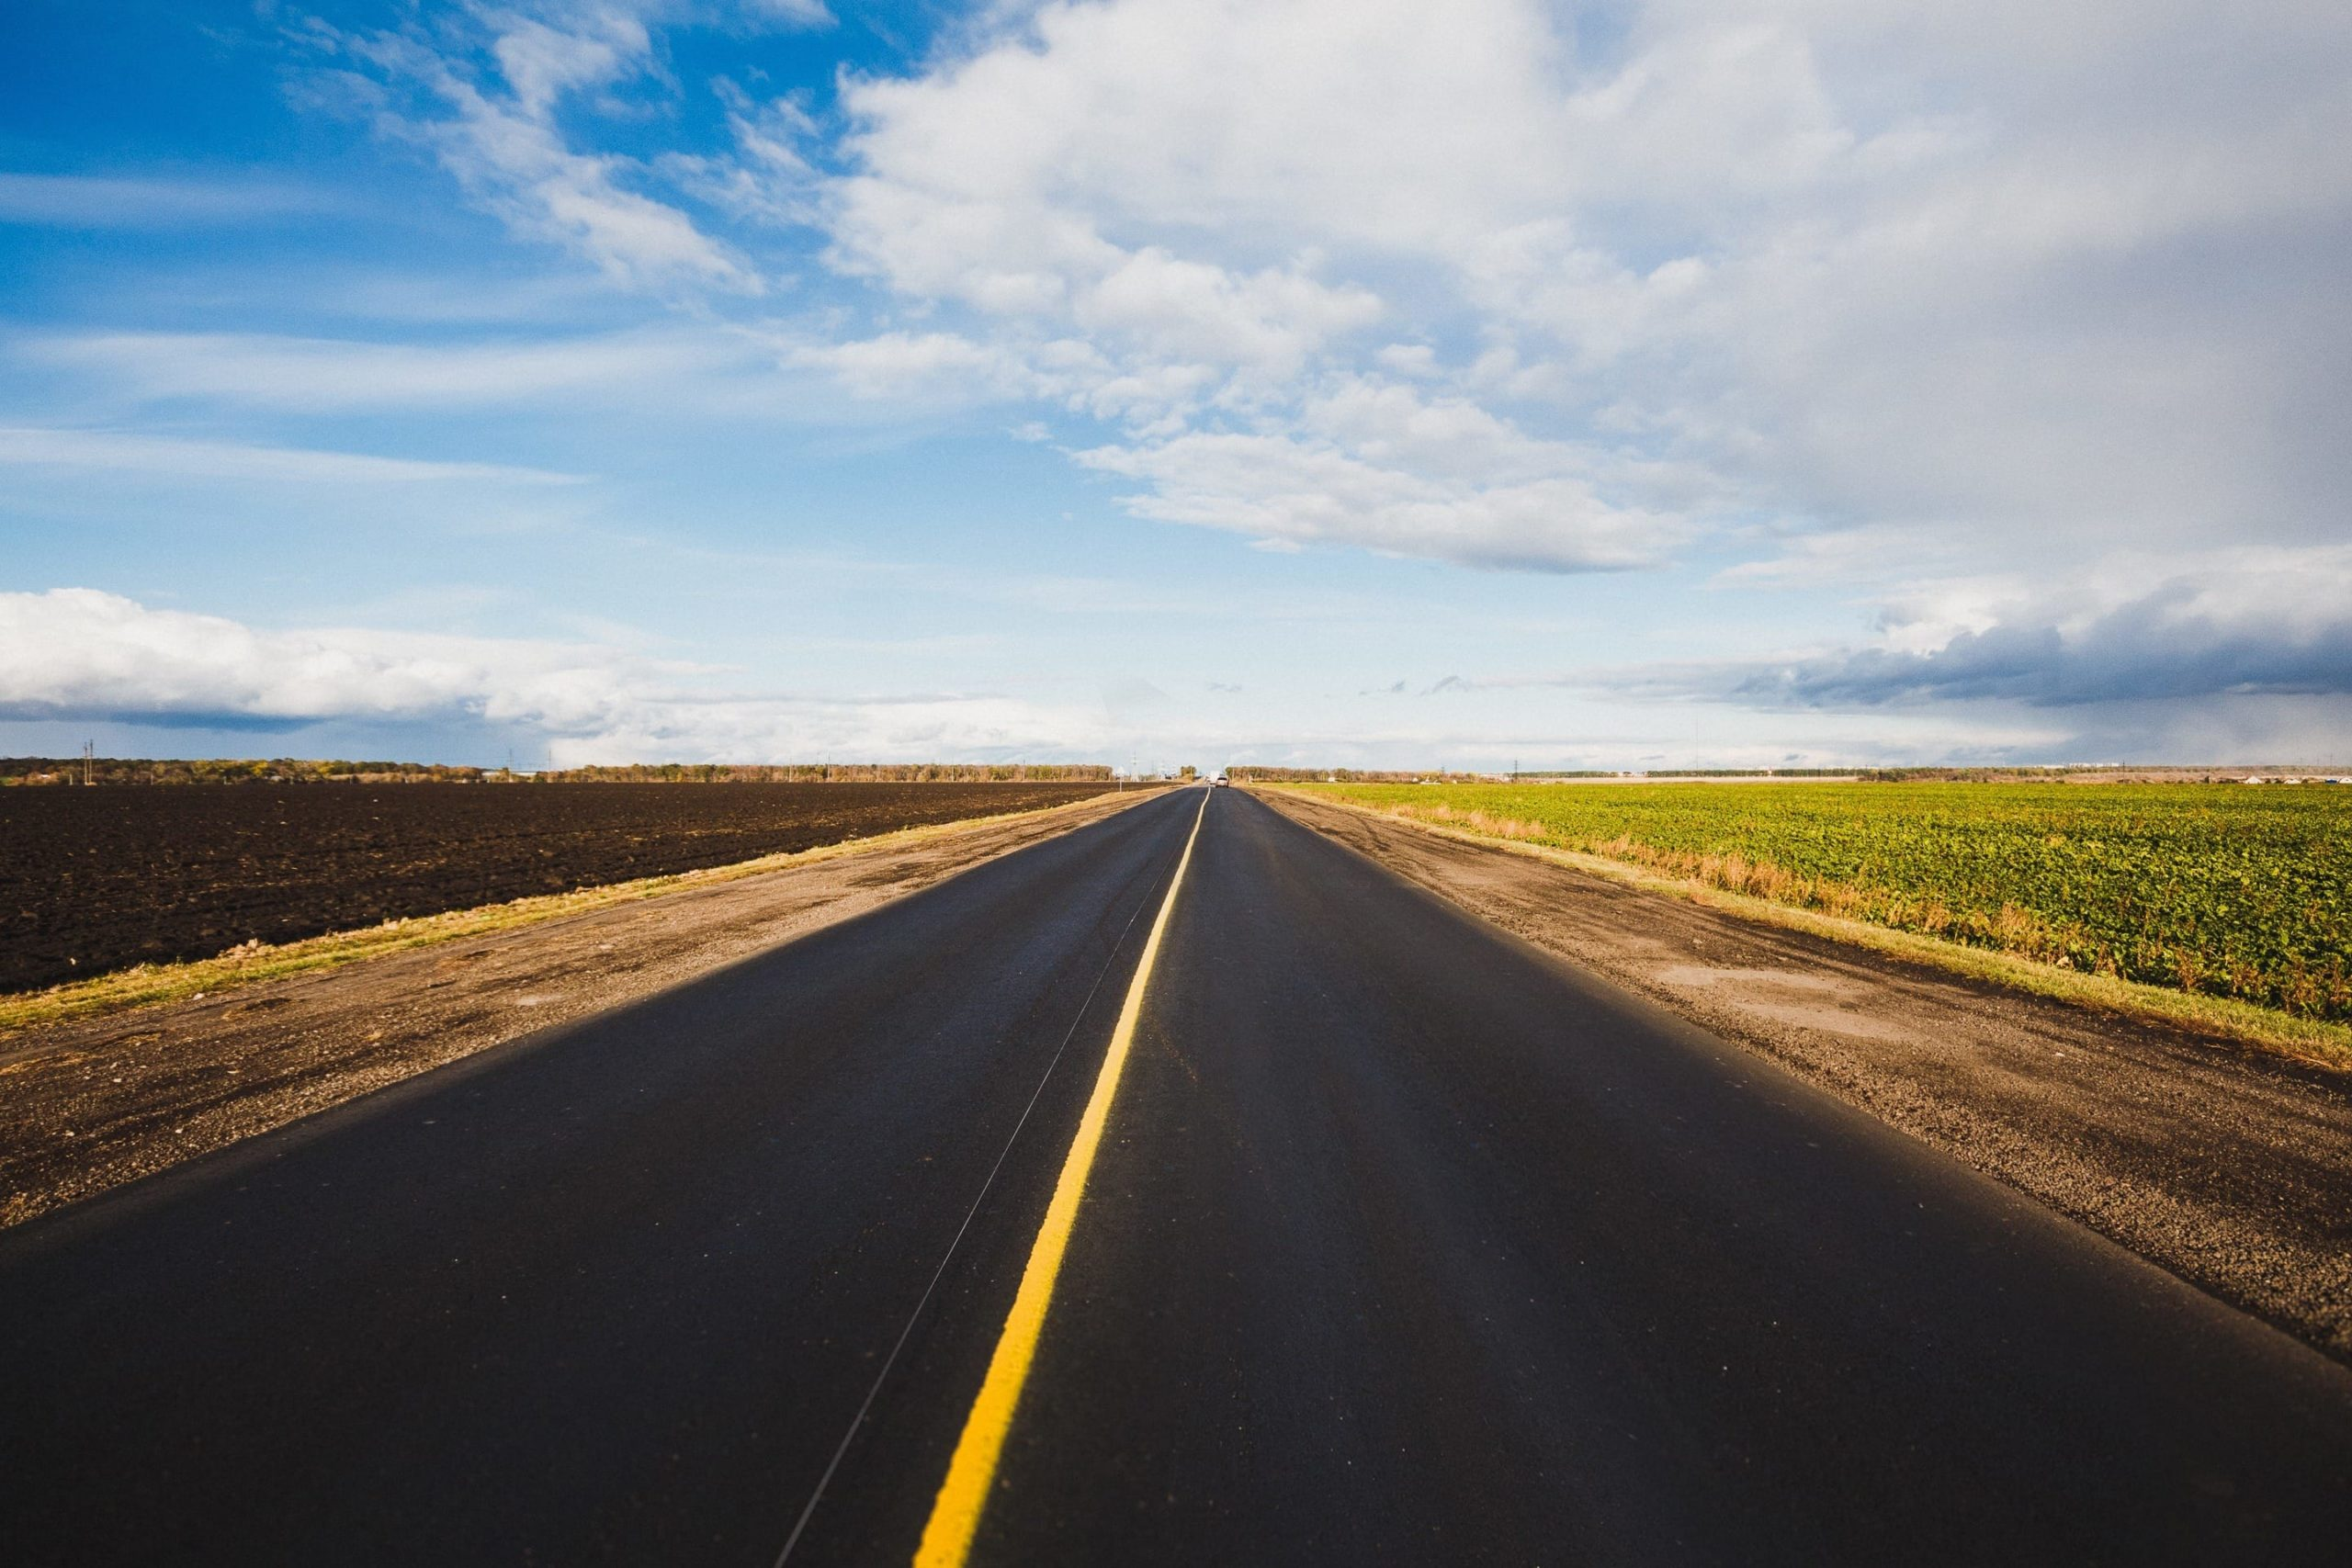 open road with no vehicles